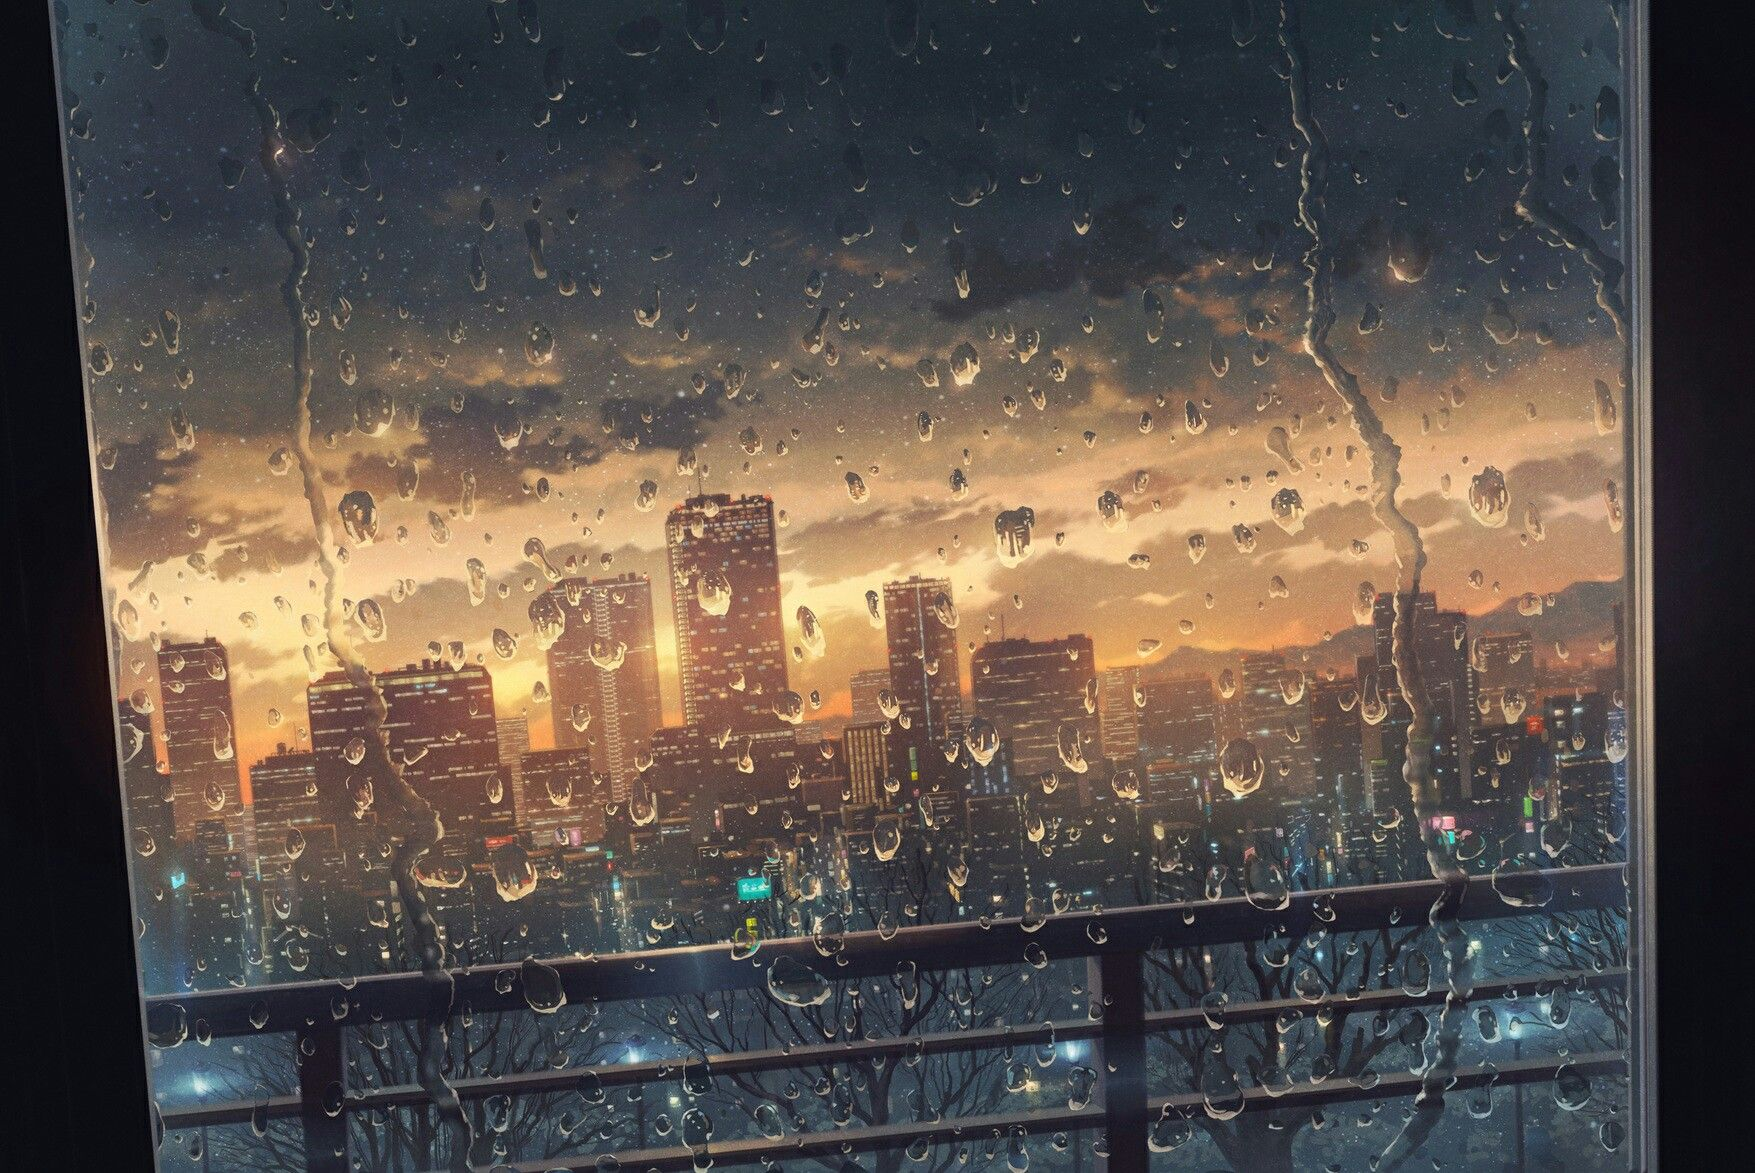 Pin By Lyn On My Canvas Anime Scenery Scenery Wallpaper Anime Backgrounds Wallpapers